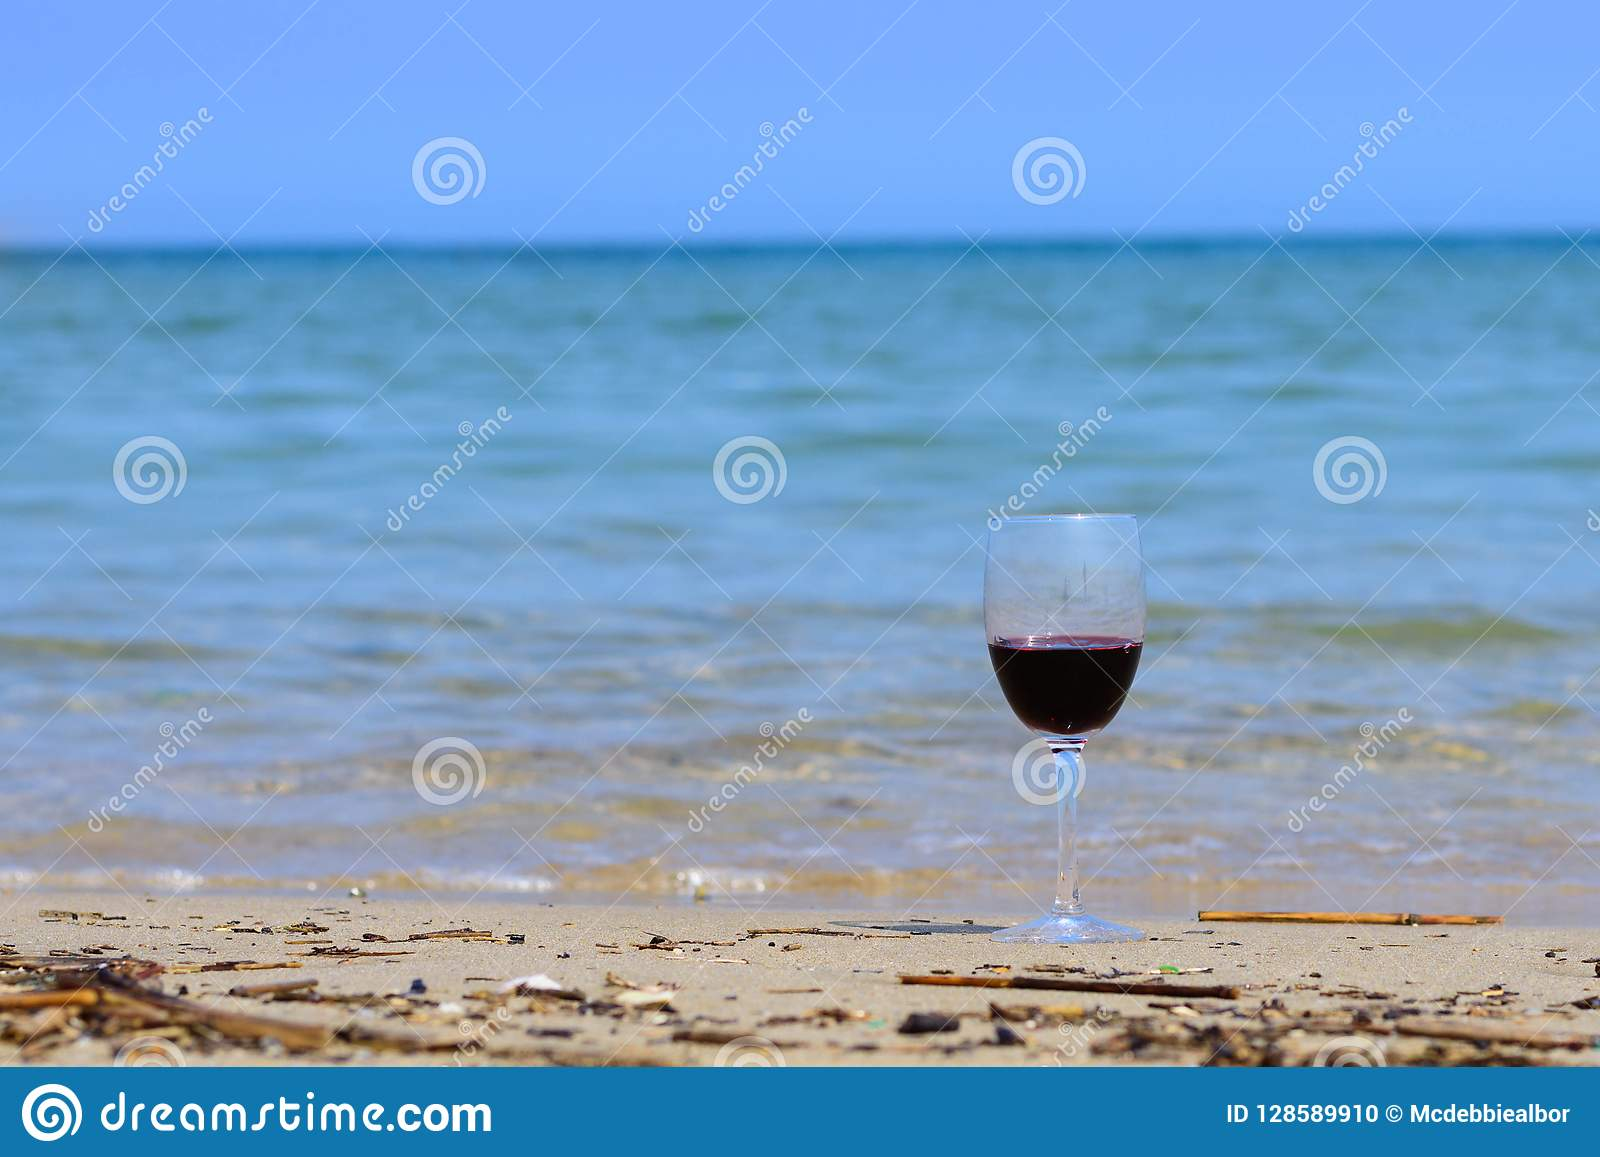 A glass of red wine on the beach seashore in summer on sunny day with blue sea.